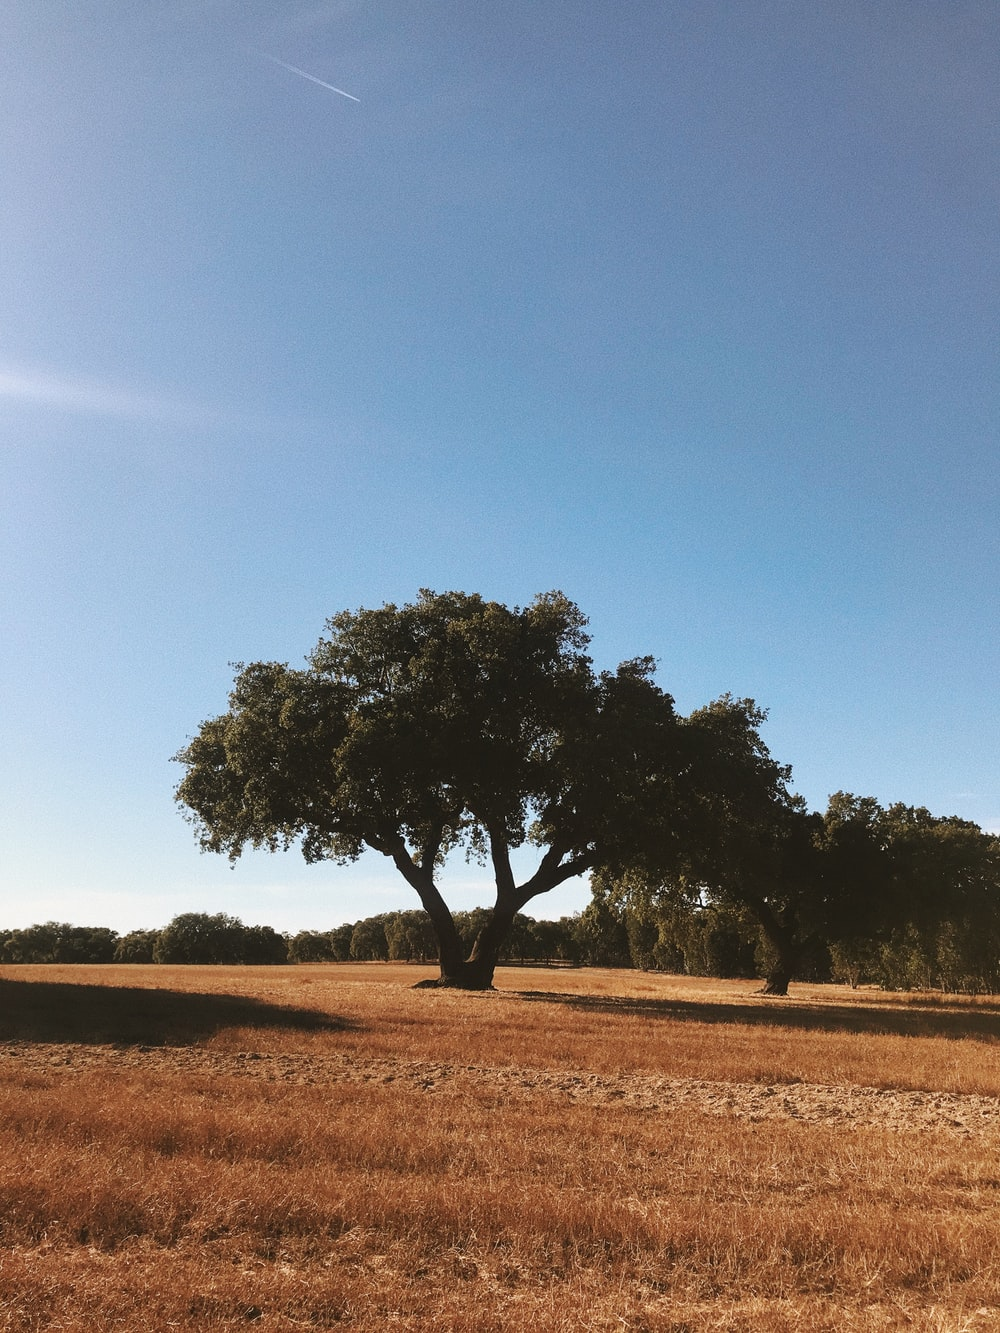 green tree on brown field under blue sky during daytime